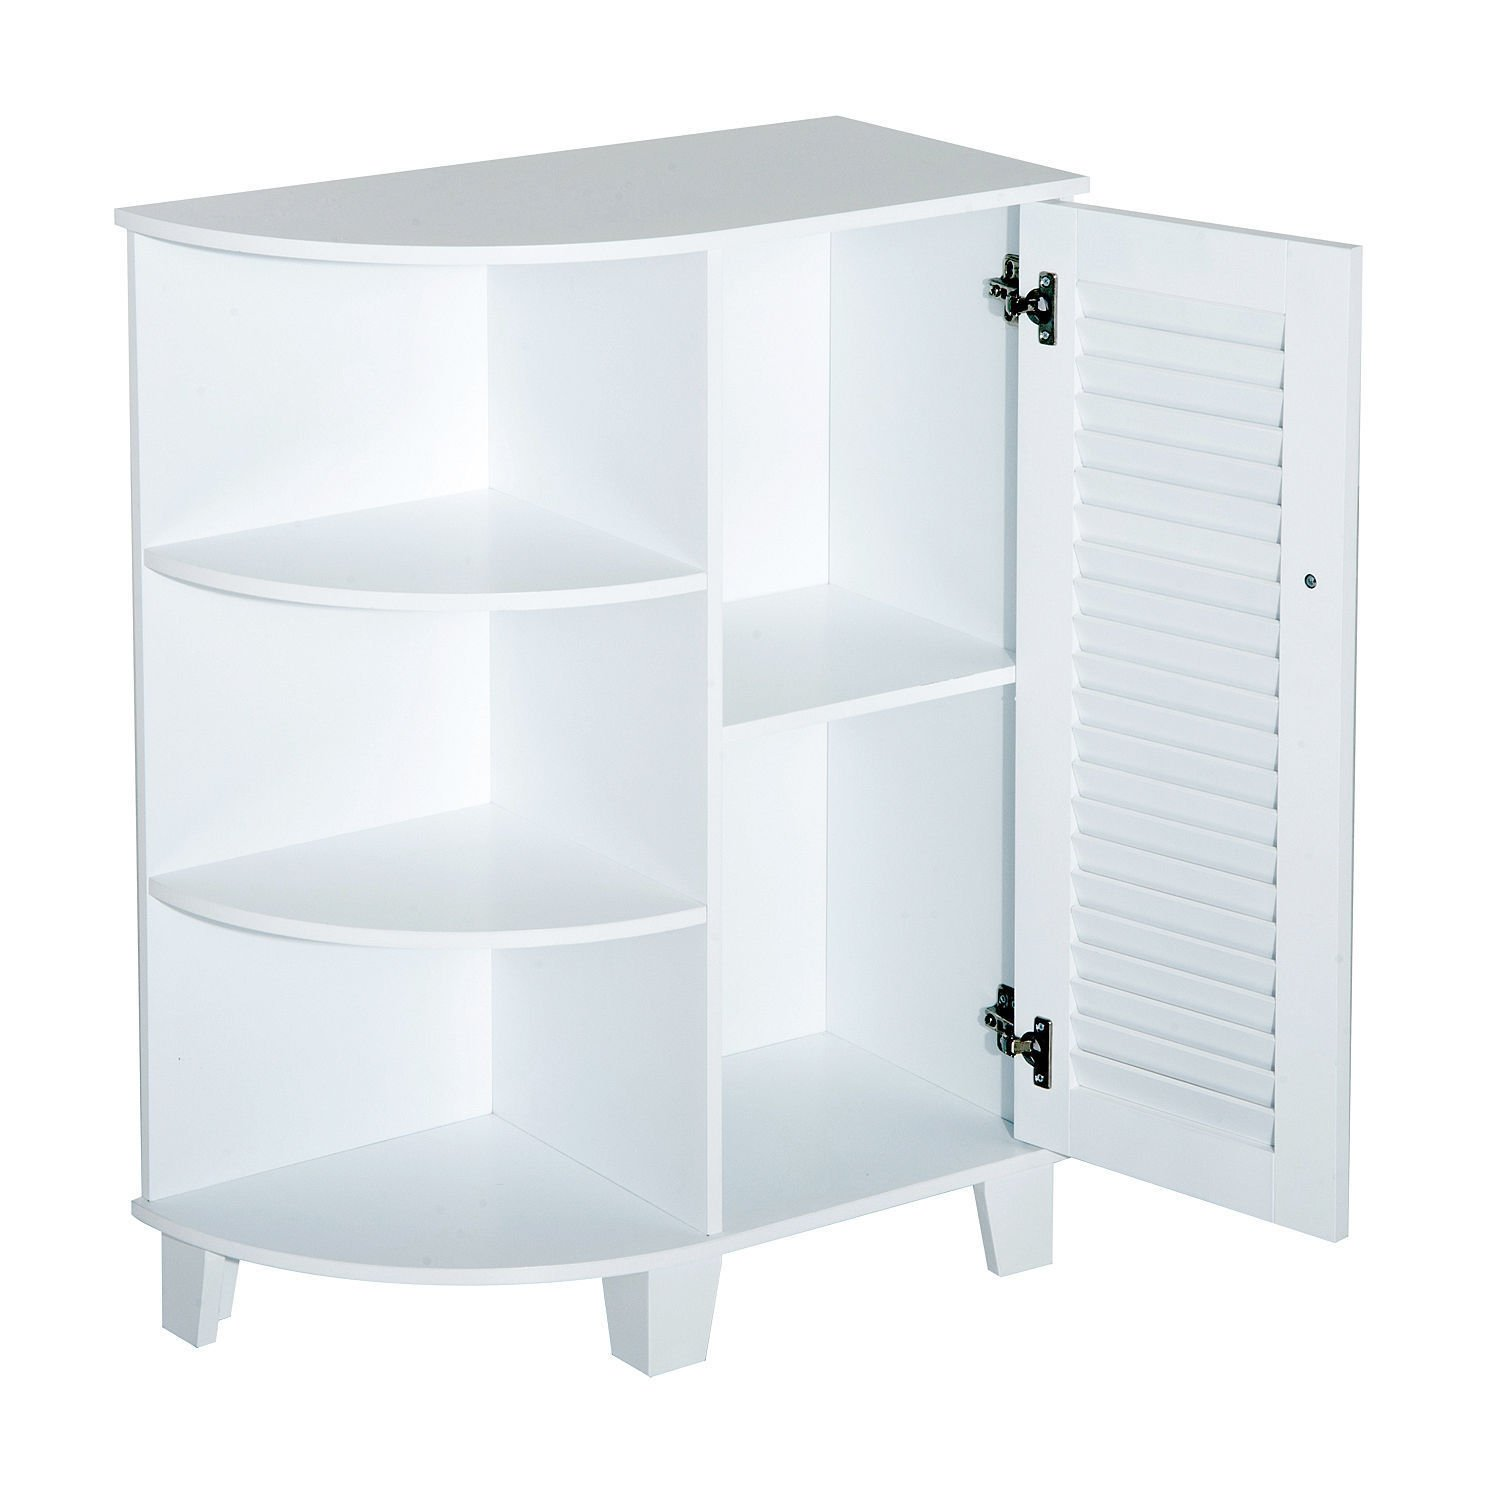 """HOMCOM 32"""" Modern Country Free Standing Bathroom Cabinet Cupboard with Rounded Shelves - White by HOMCOM (Image #3)"""